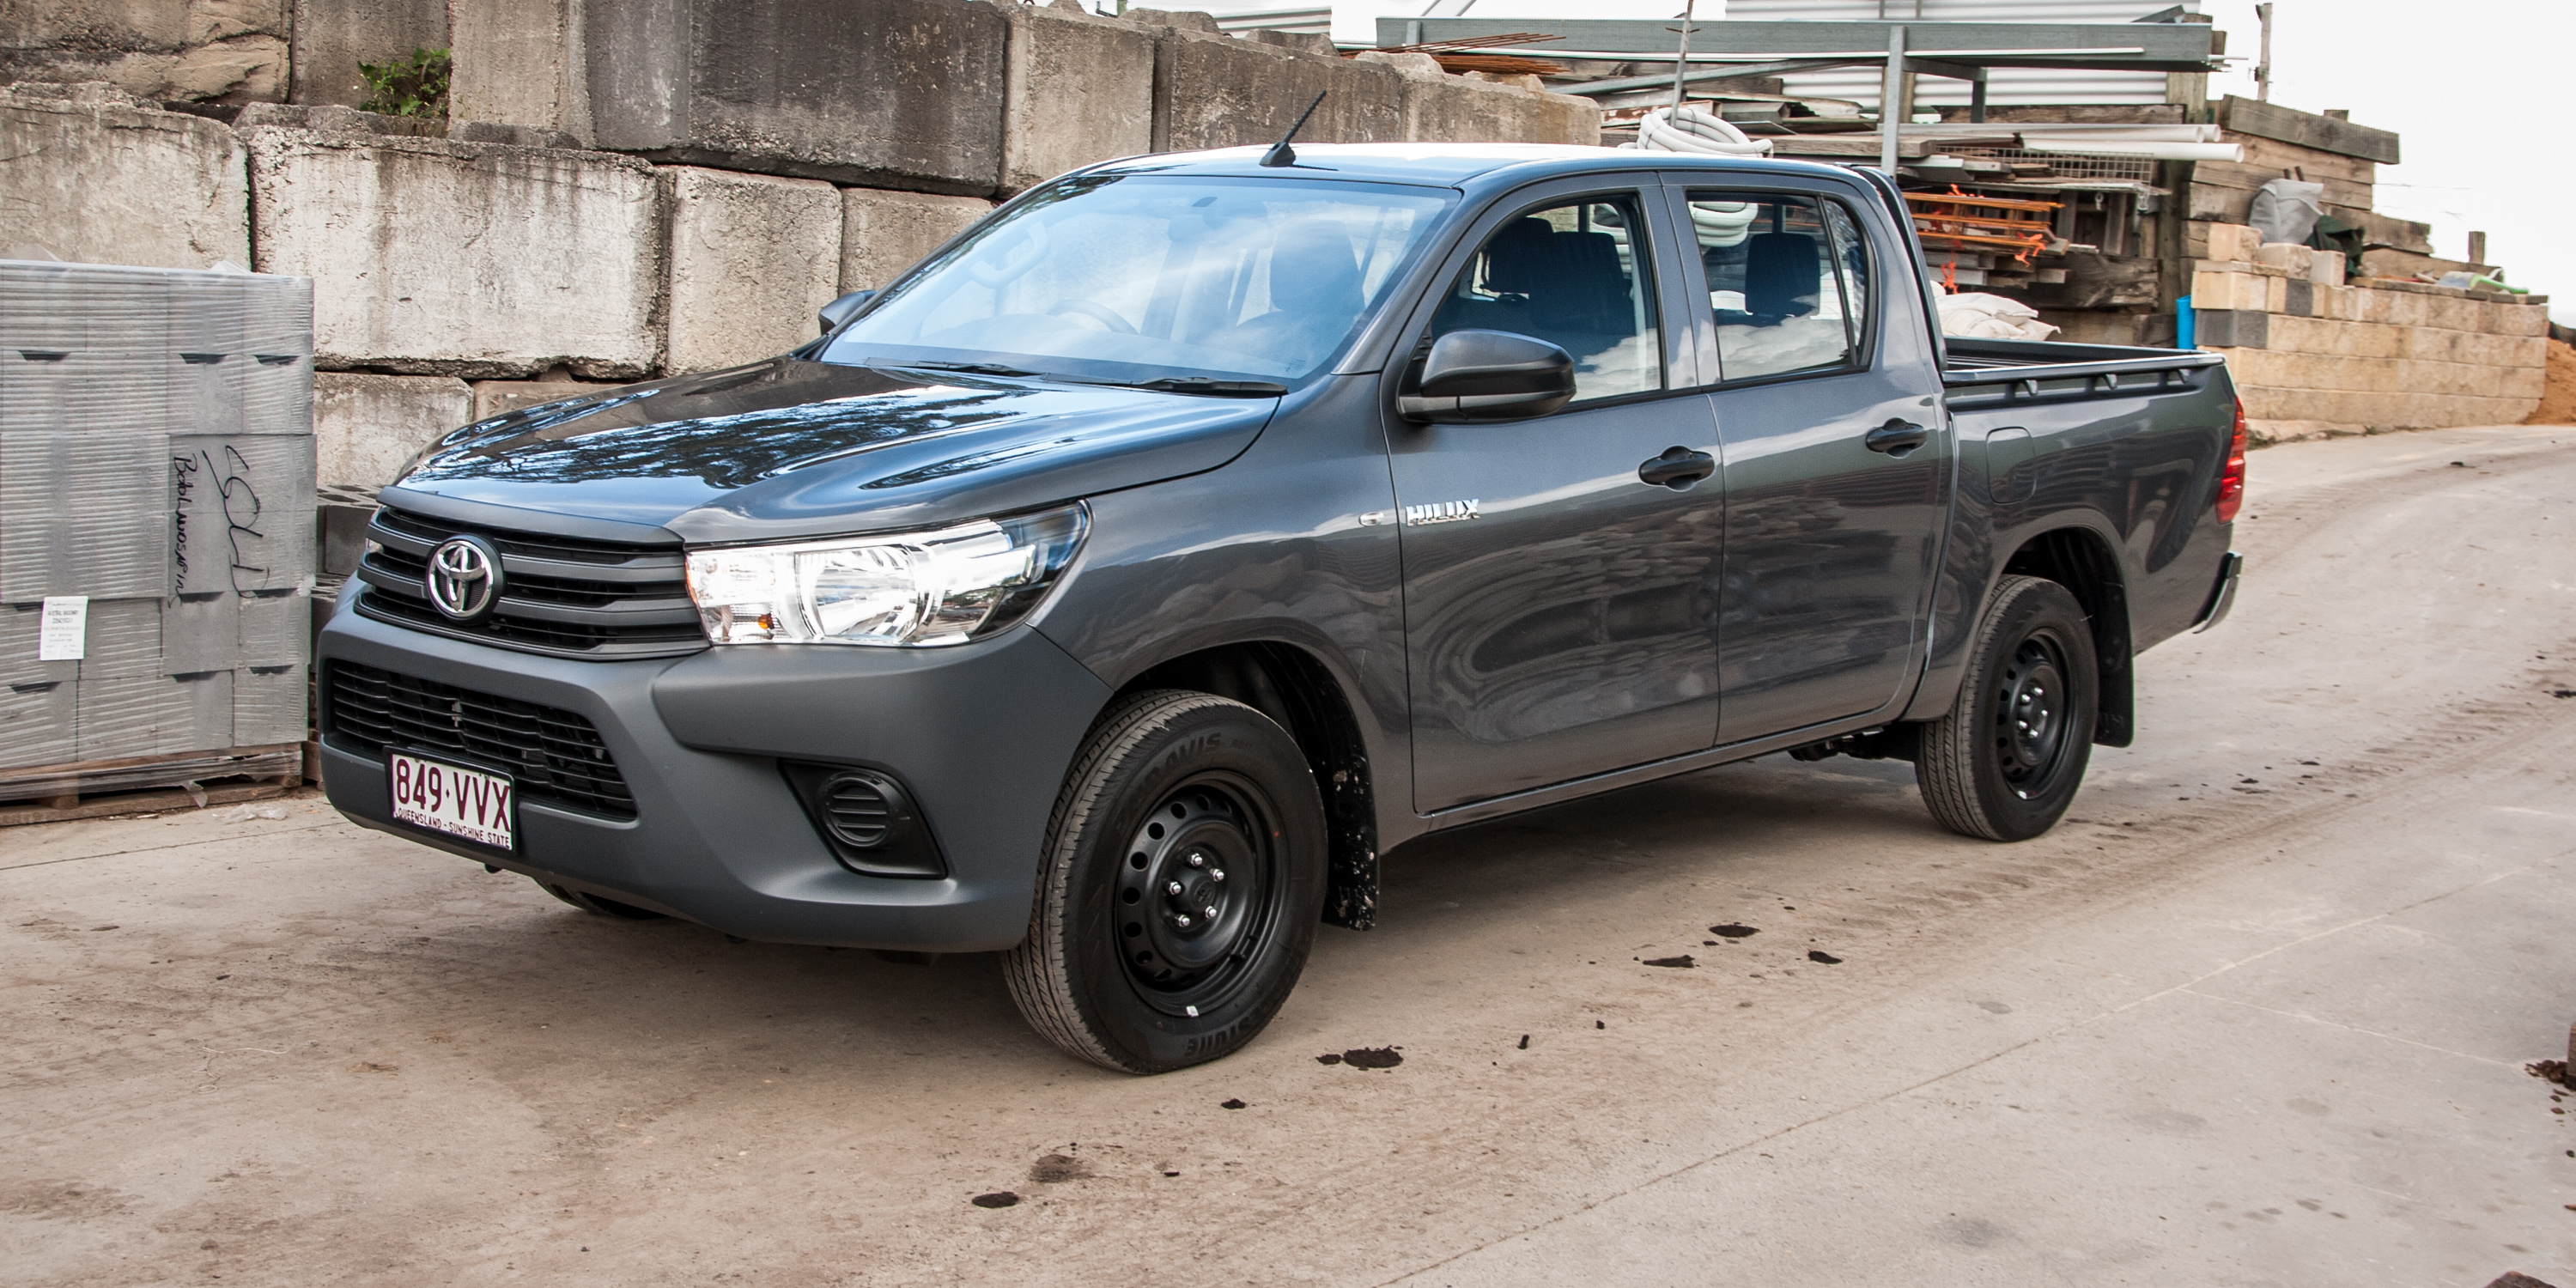 2016 toyota hilux workmate 4x2 double cab review caradvice. Black Bedroom Furniture Sets. Home Design Ideas